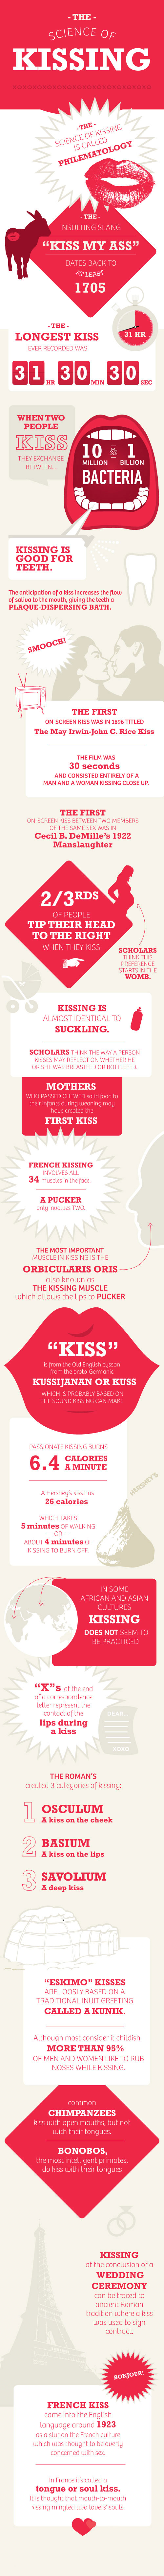 science of kissing